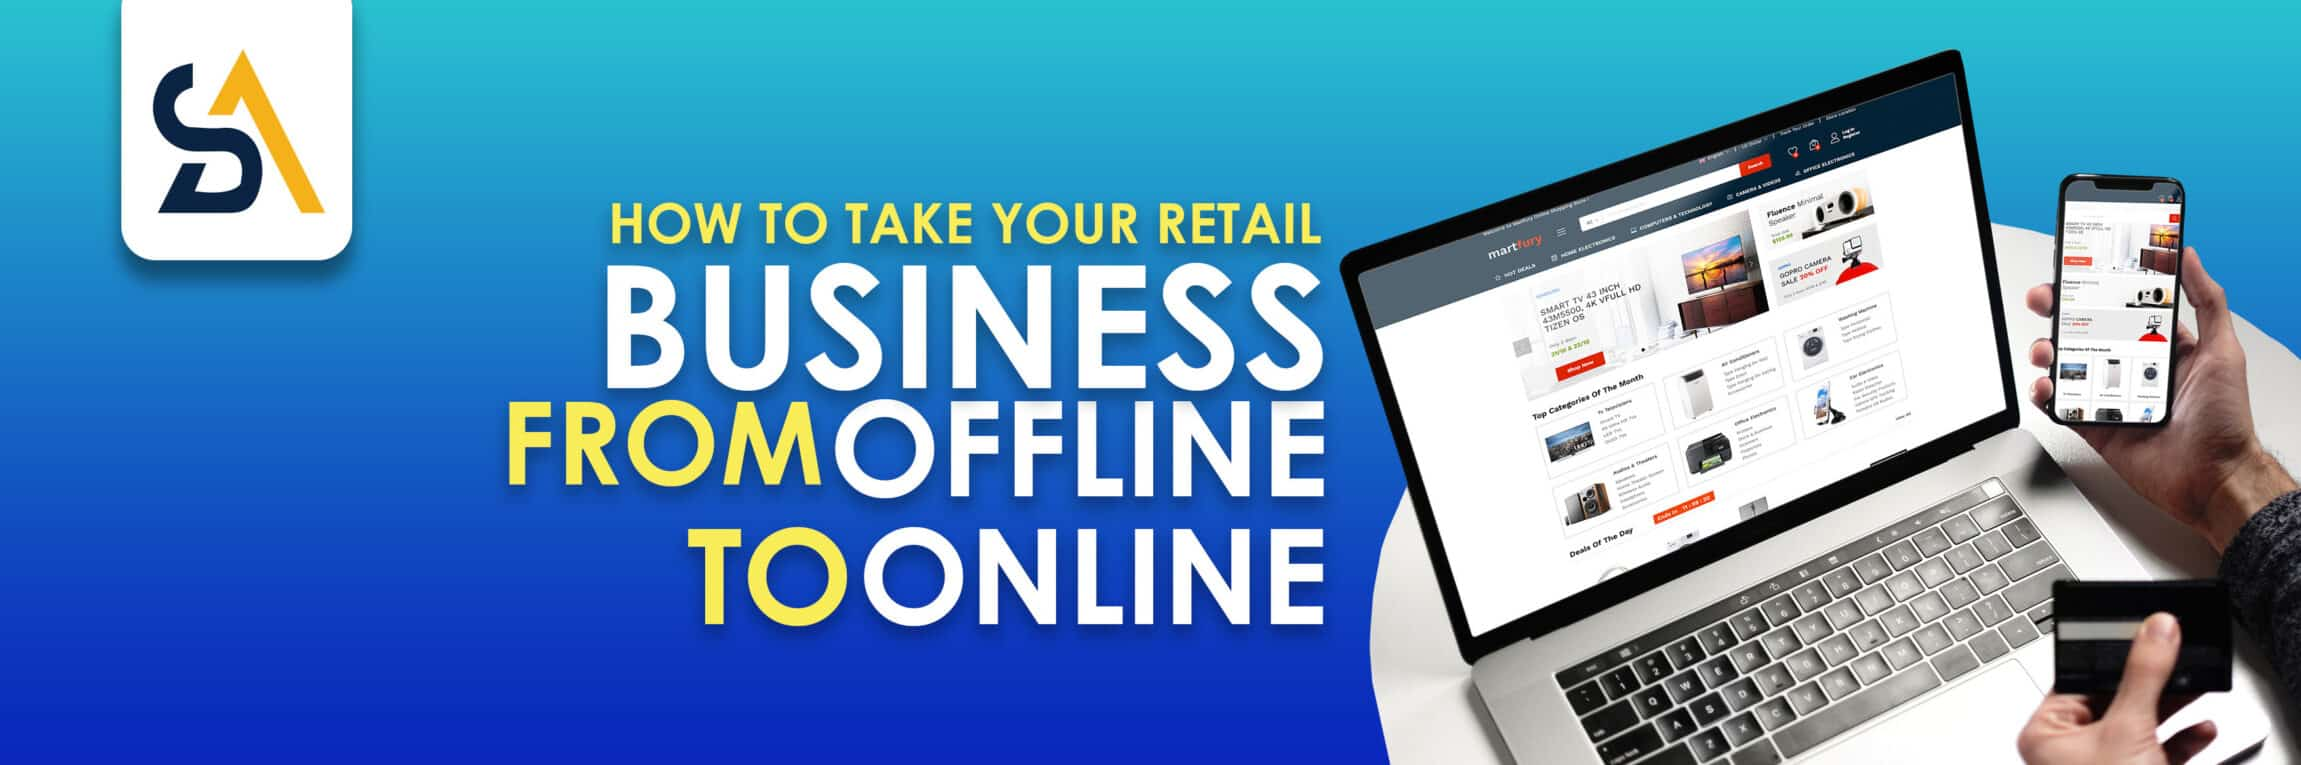 How to take your retail business from offline to online